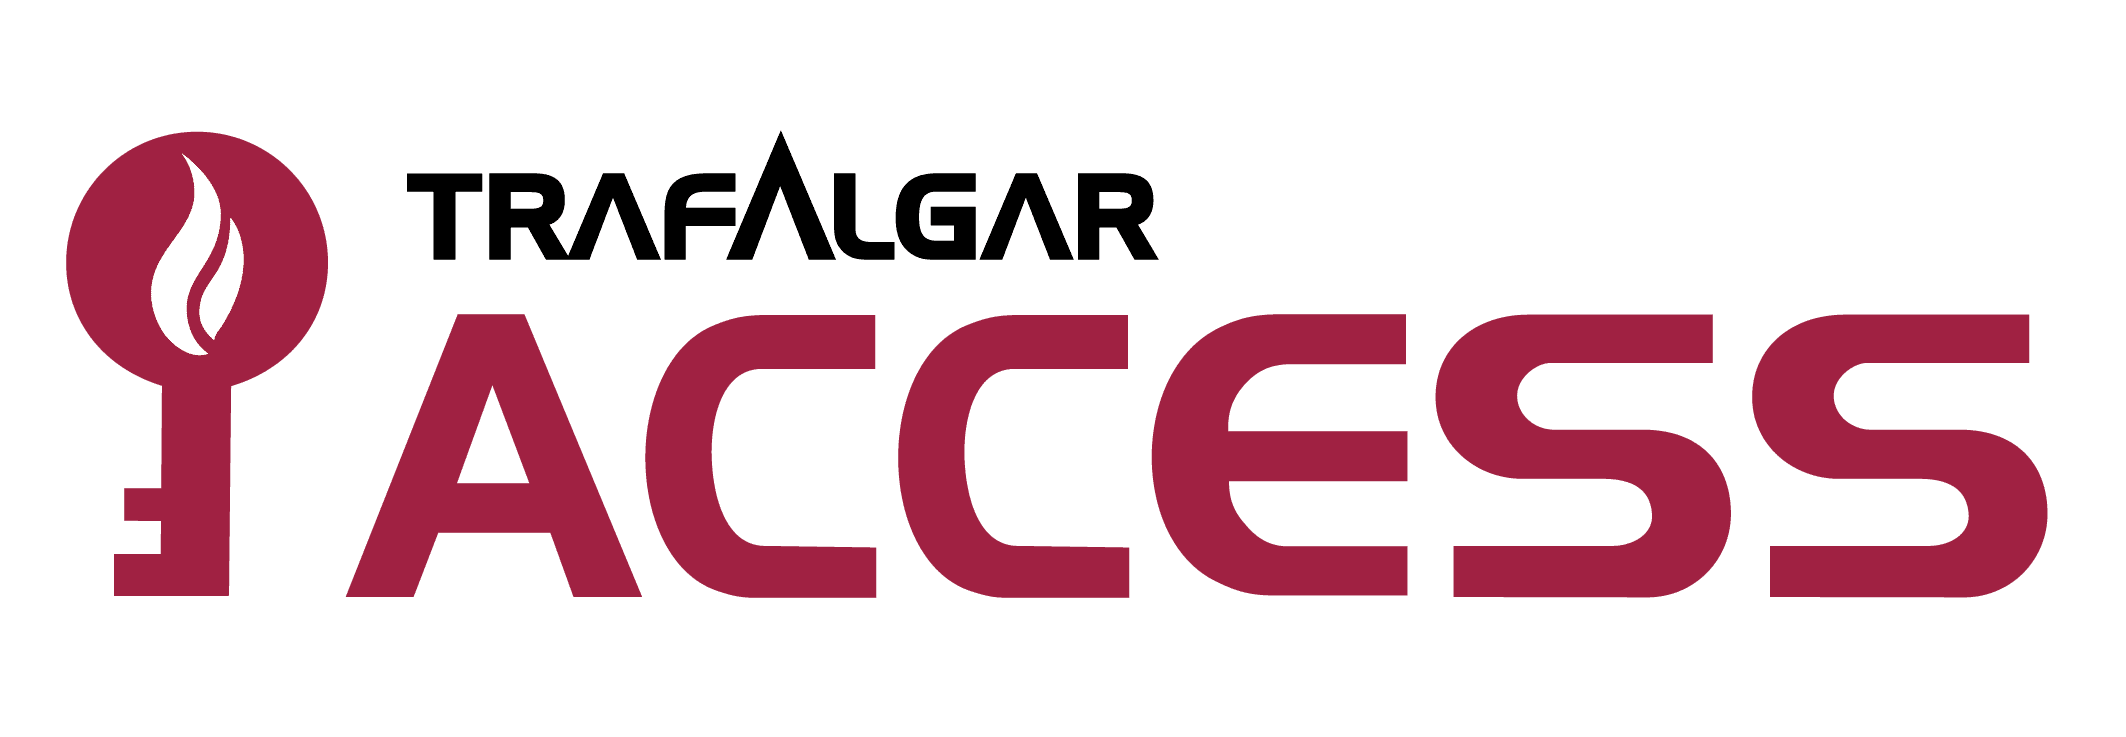 cropped-cropped-T_Access_logo_.png